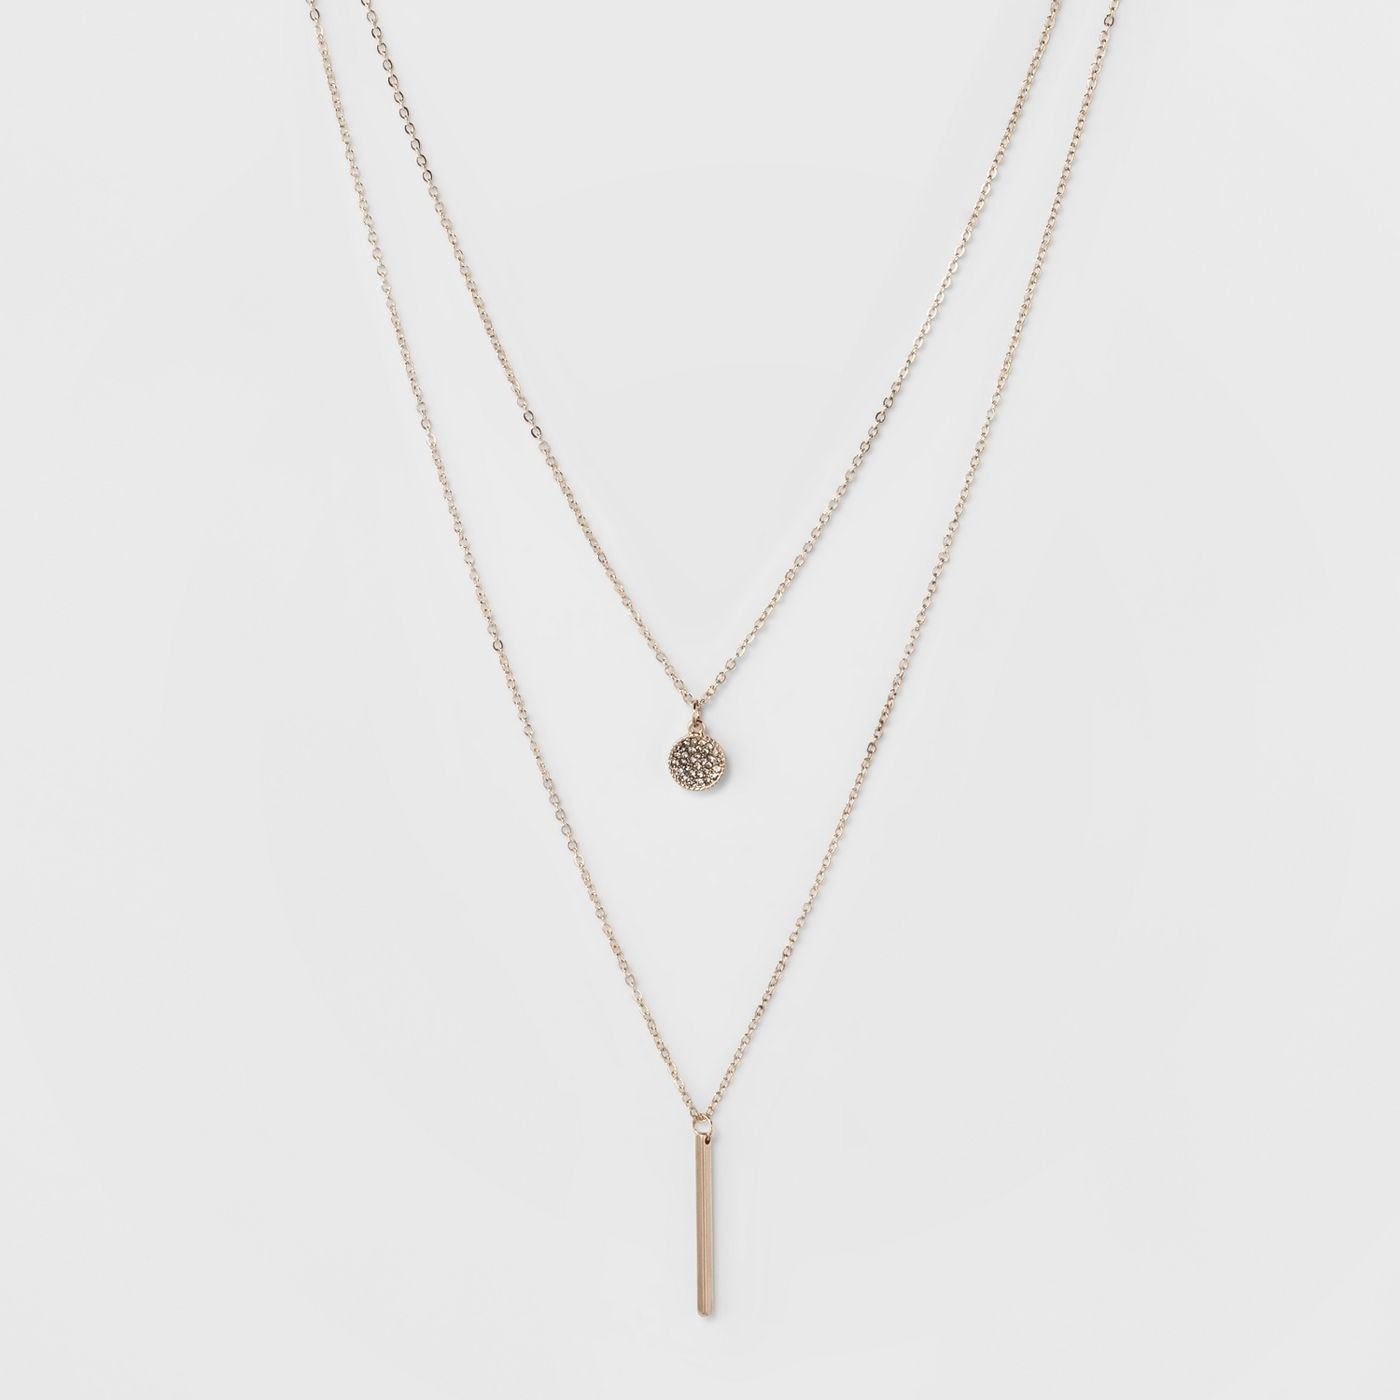 Rose gold double necklace